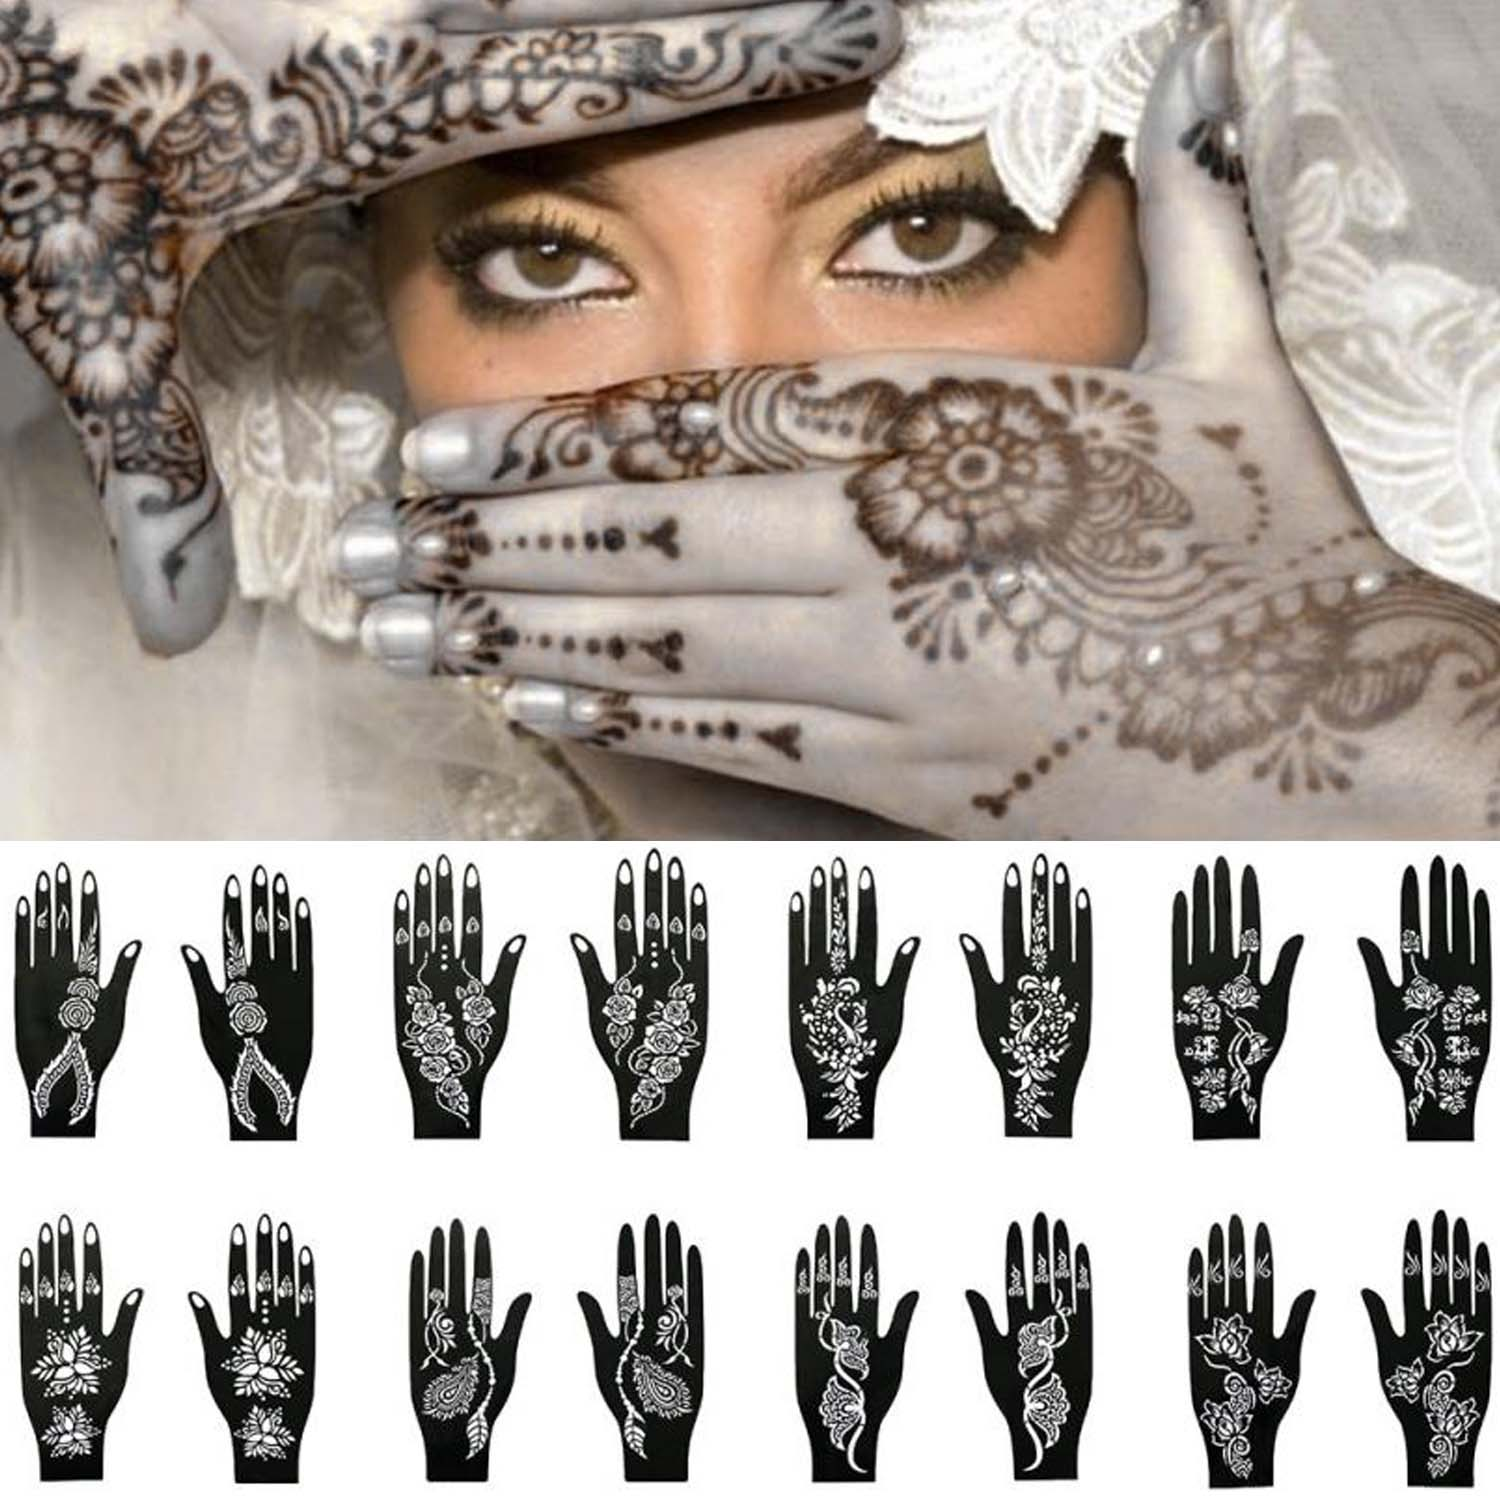 Reusable Henna Tattoo Temporary Stencil Template Sticker For Men Women Teens Hand Finger Body Paint Wedding Birthday Party